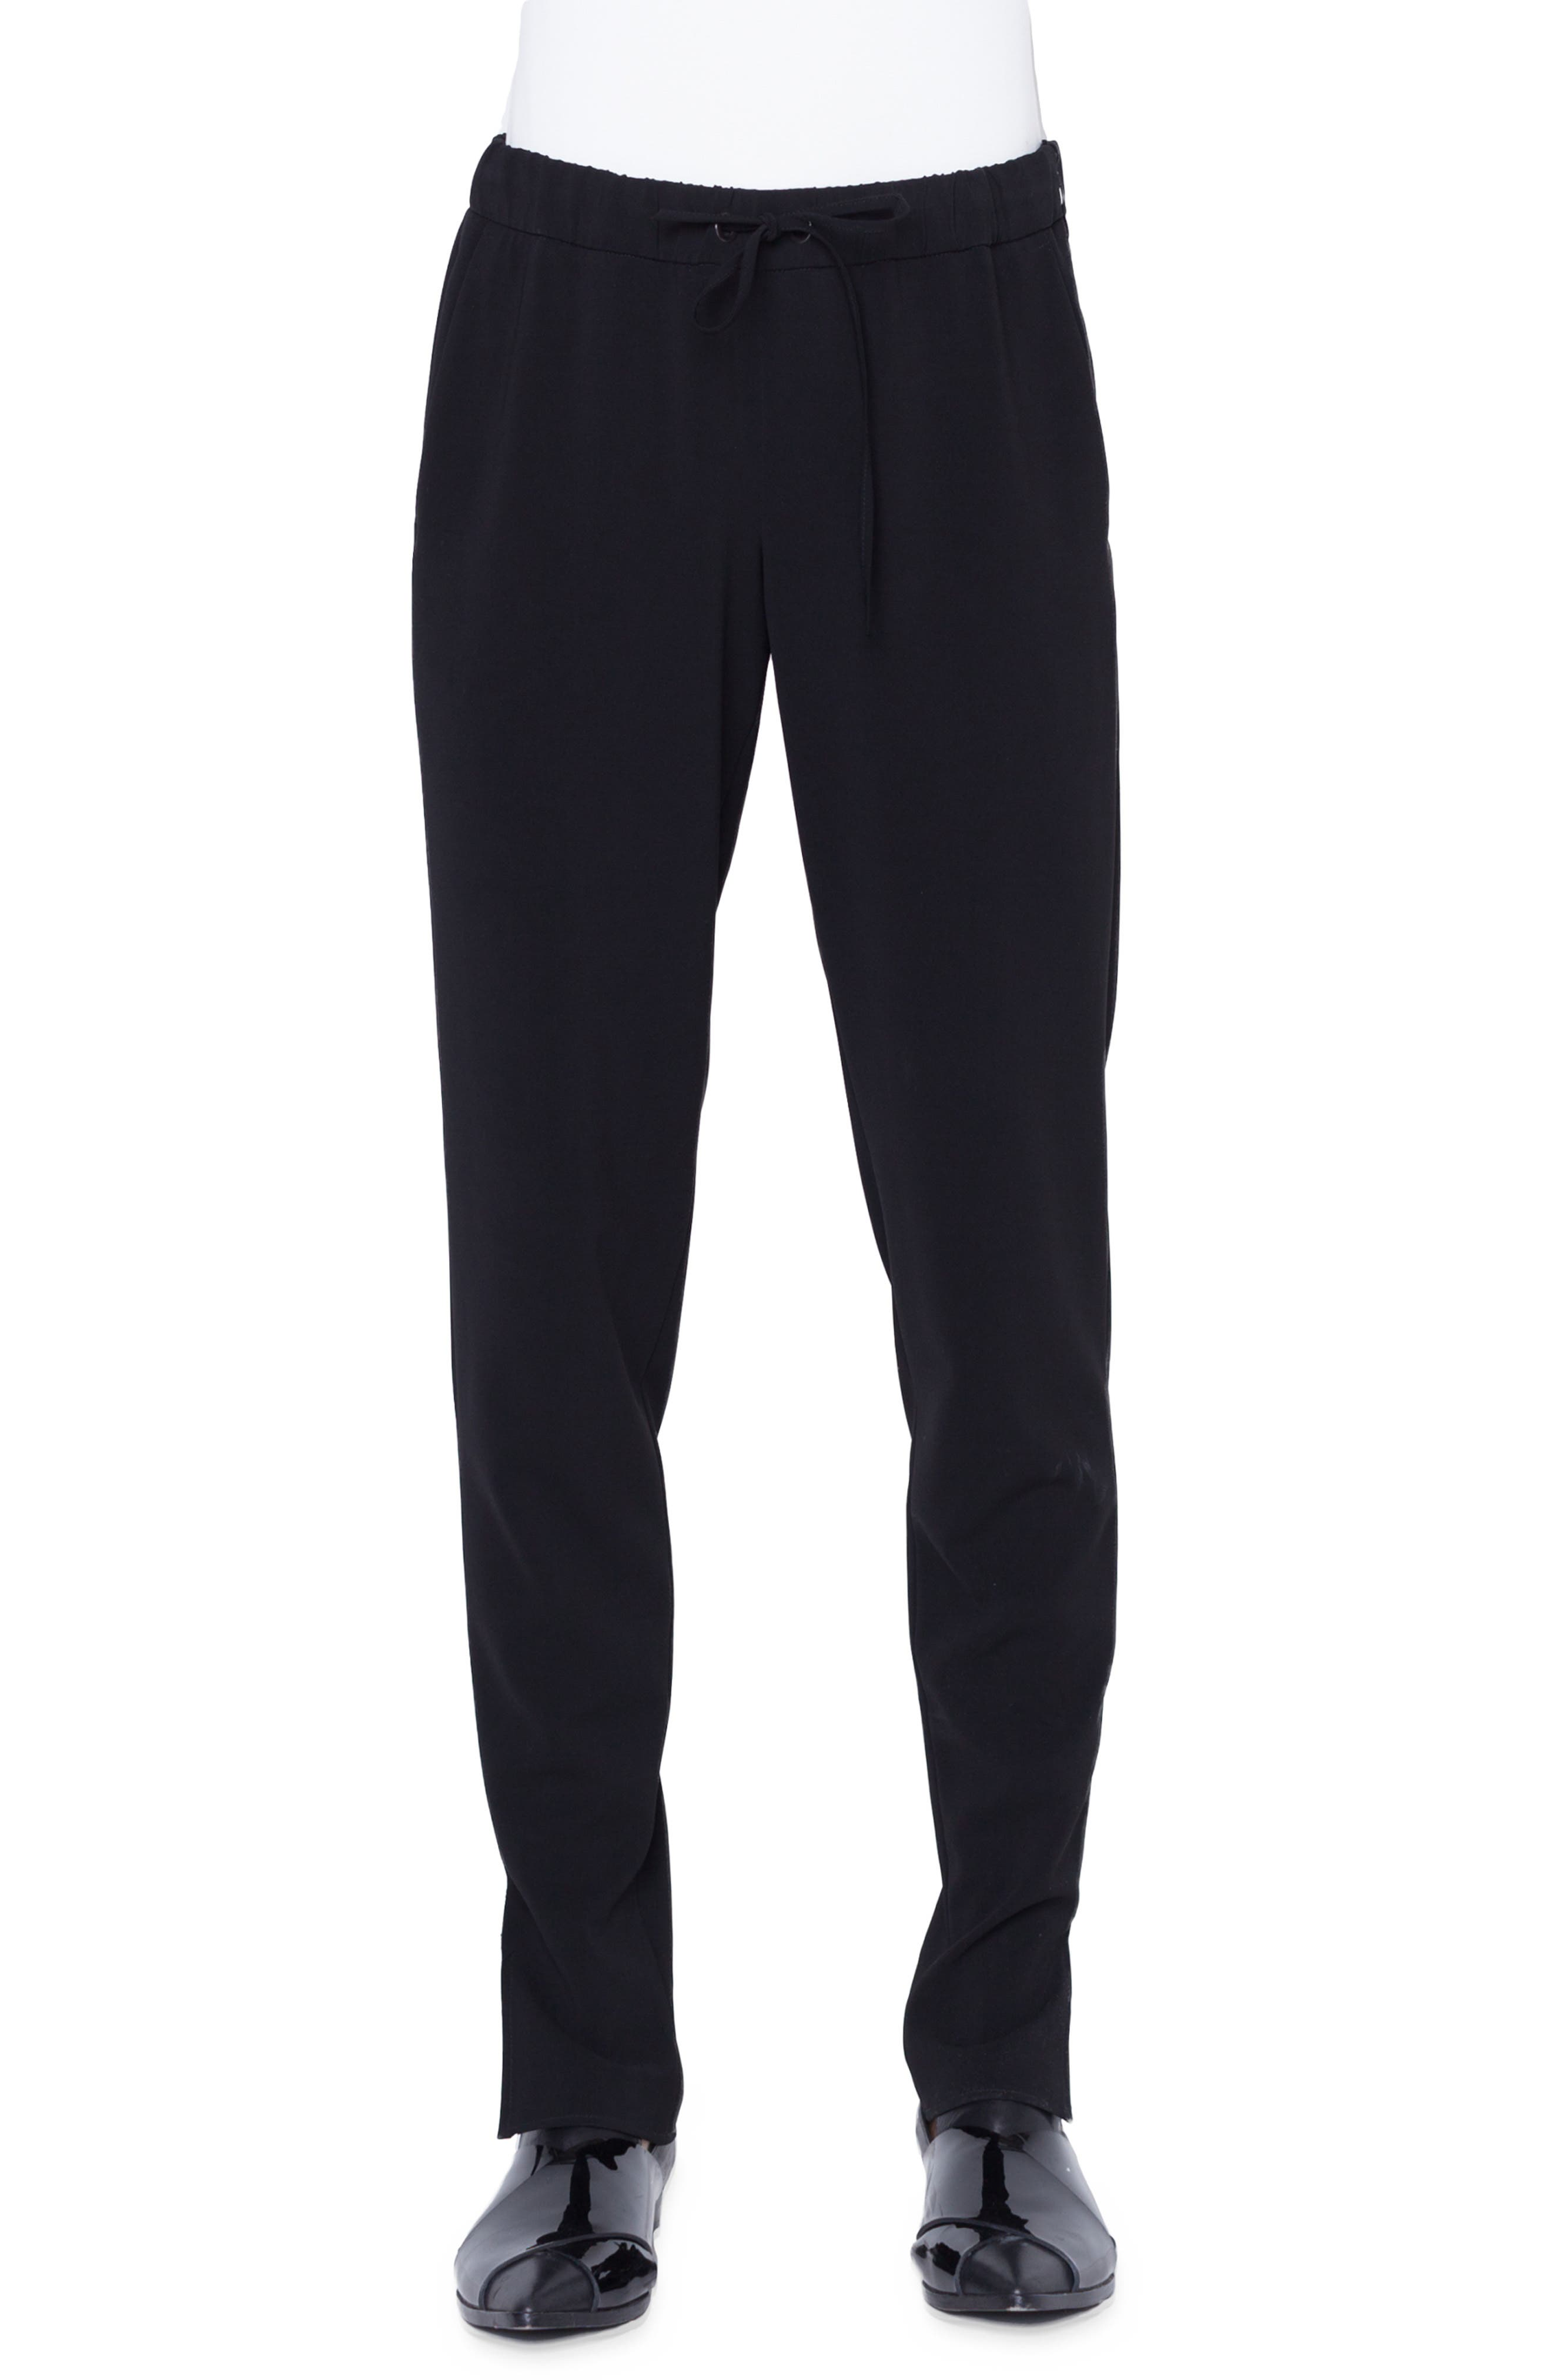 Mike Tapered Jersey Pants in Nero